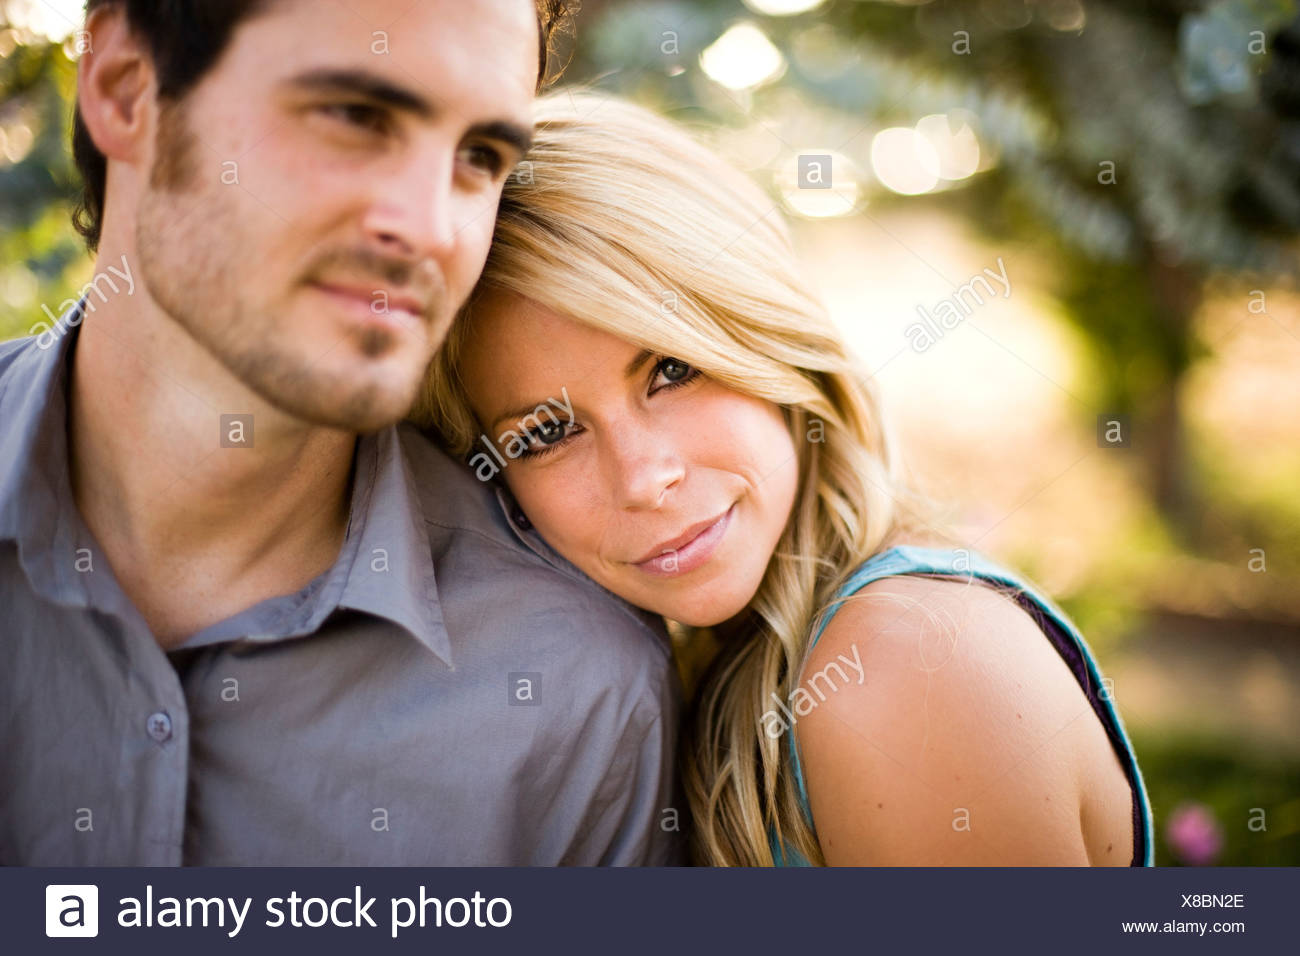 Portrait of woman leaning on man's shoulder - Stock Image